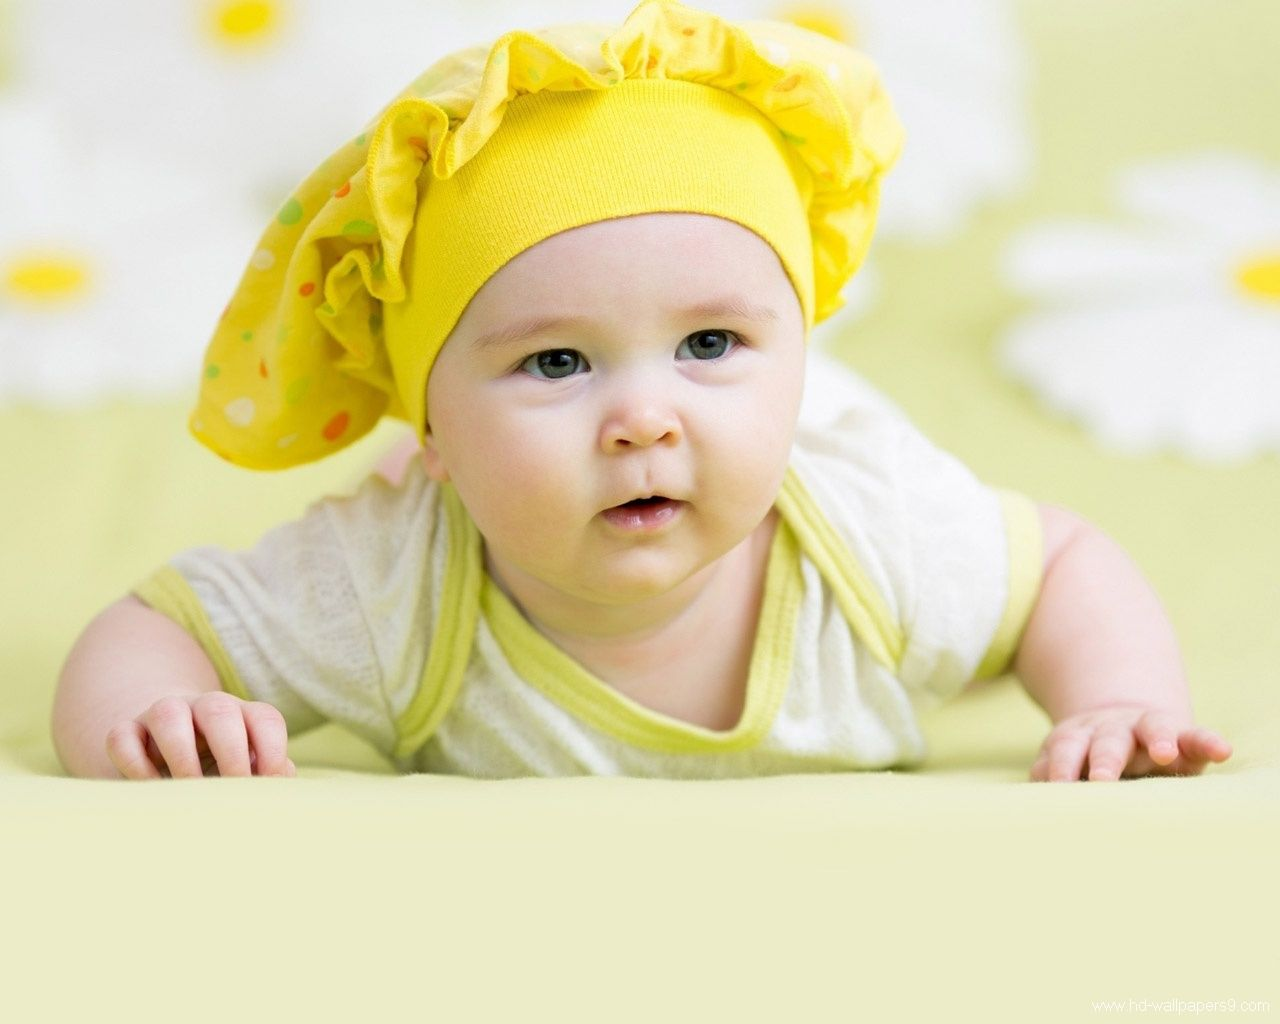 cute baby wallpapers for desktop free download - sf wallpaper